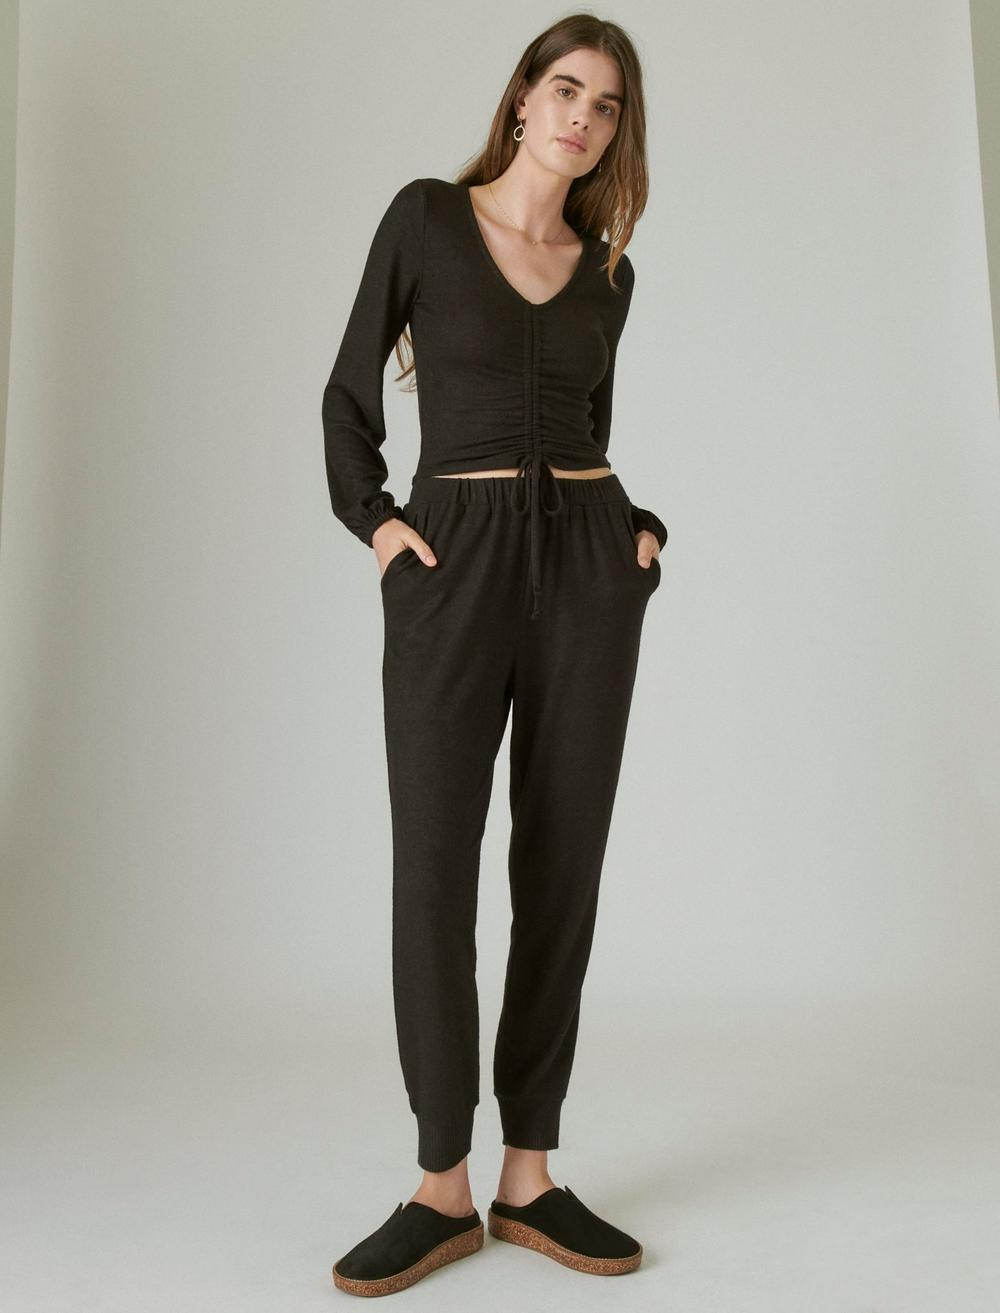 CLOUD JERSEY RIBBED RUCHED TOP, image 2